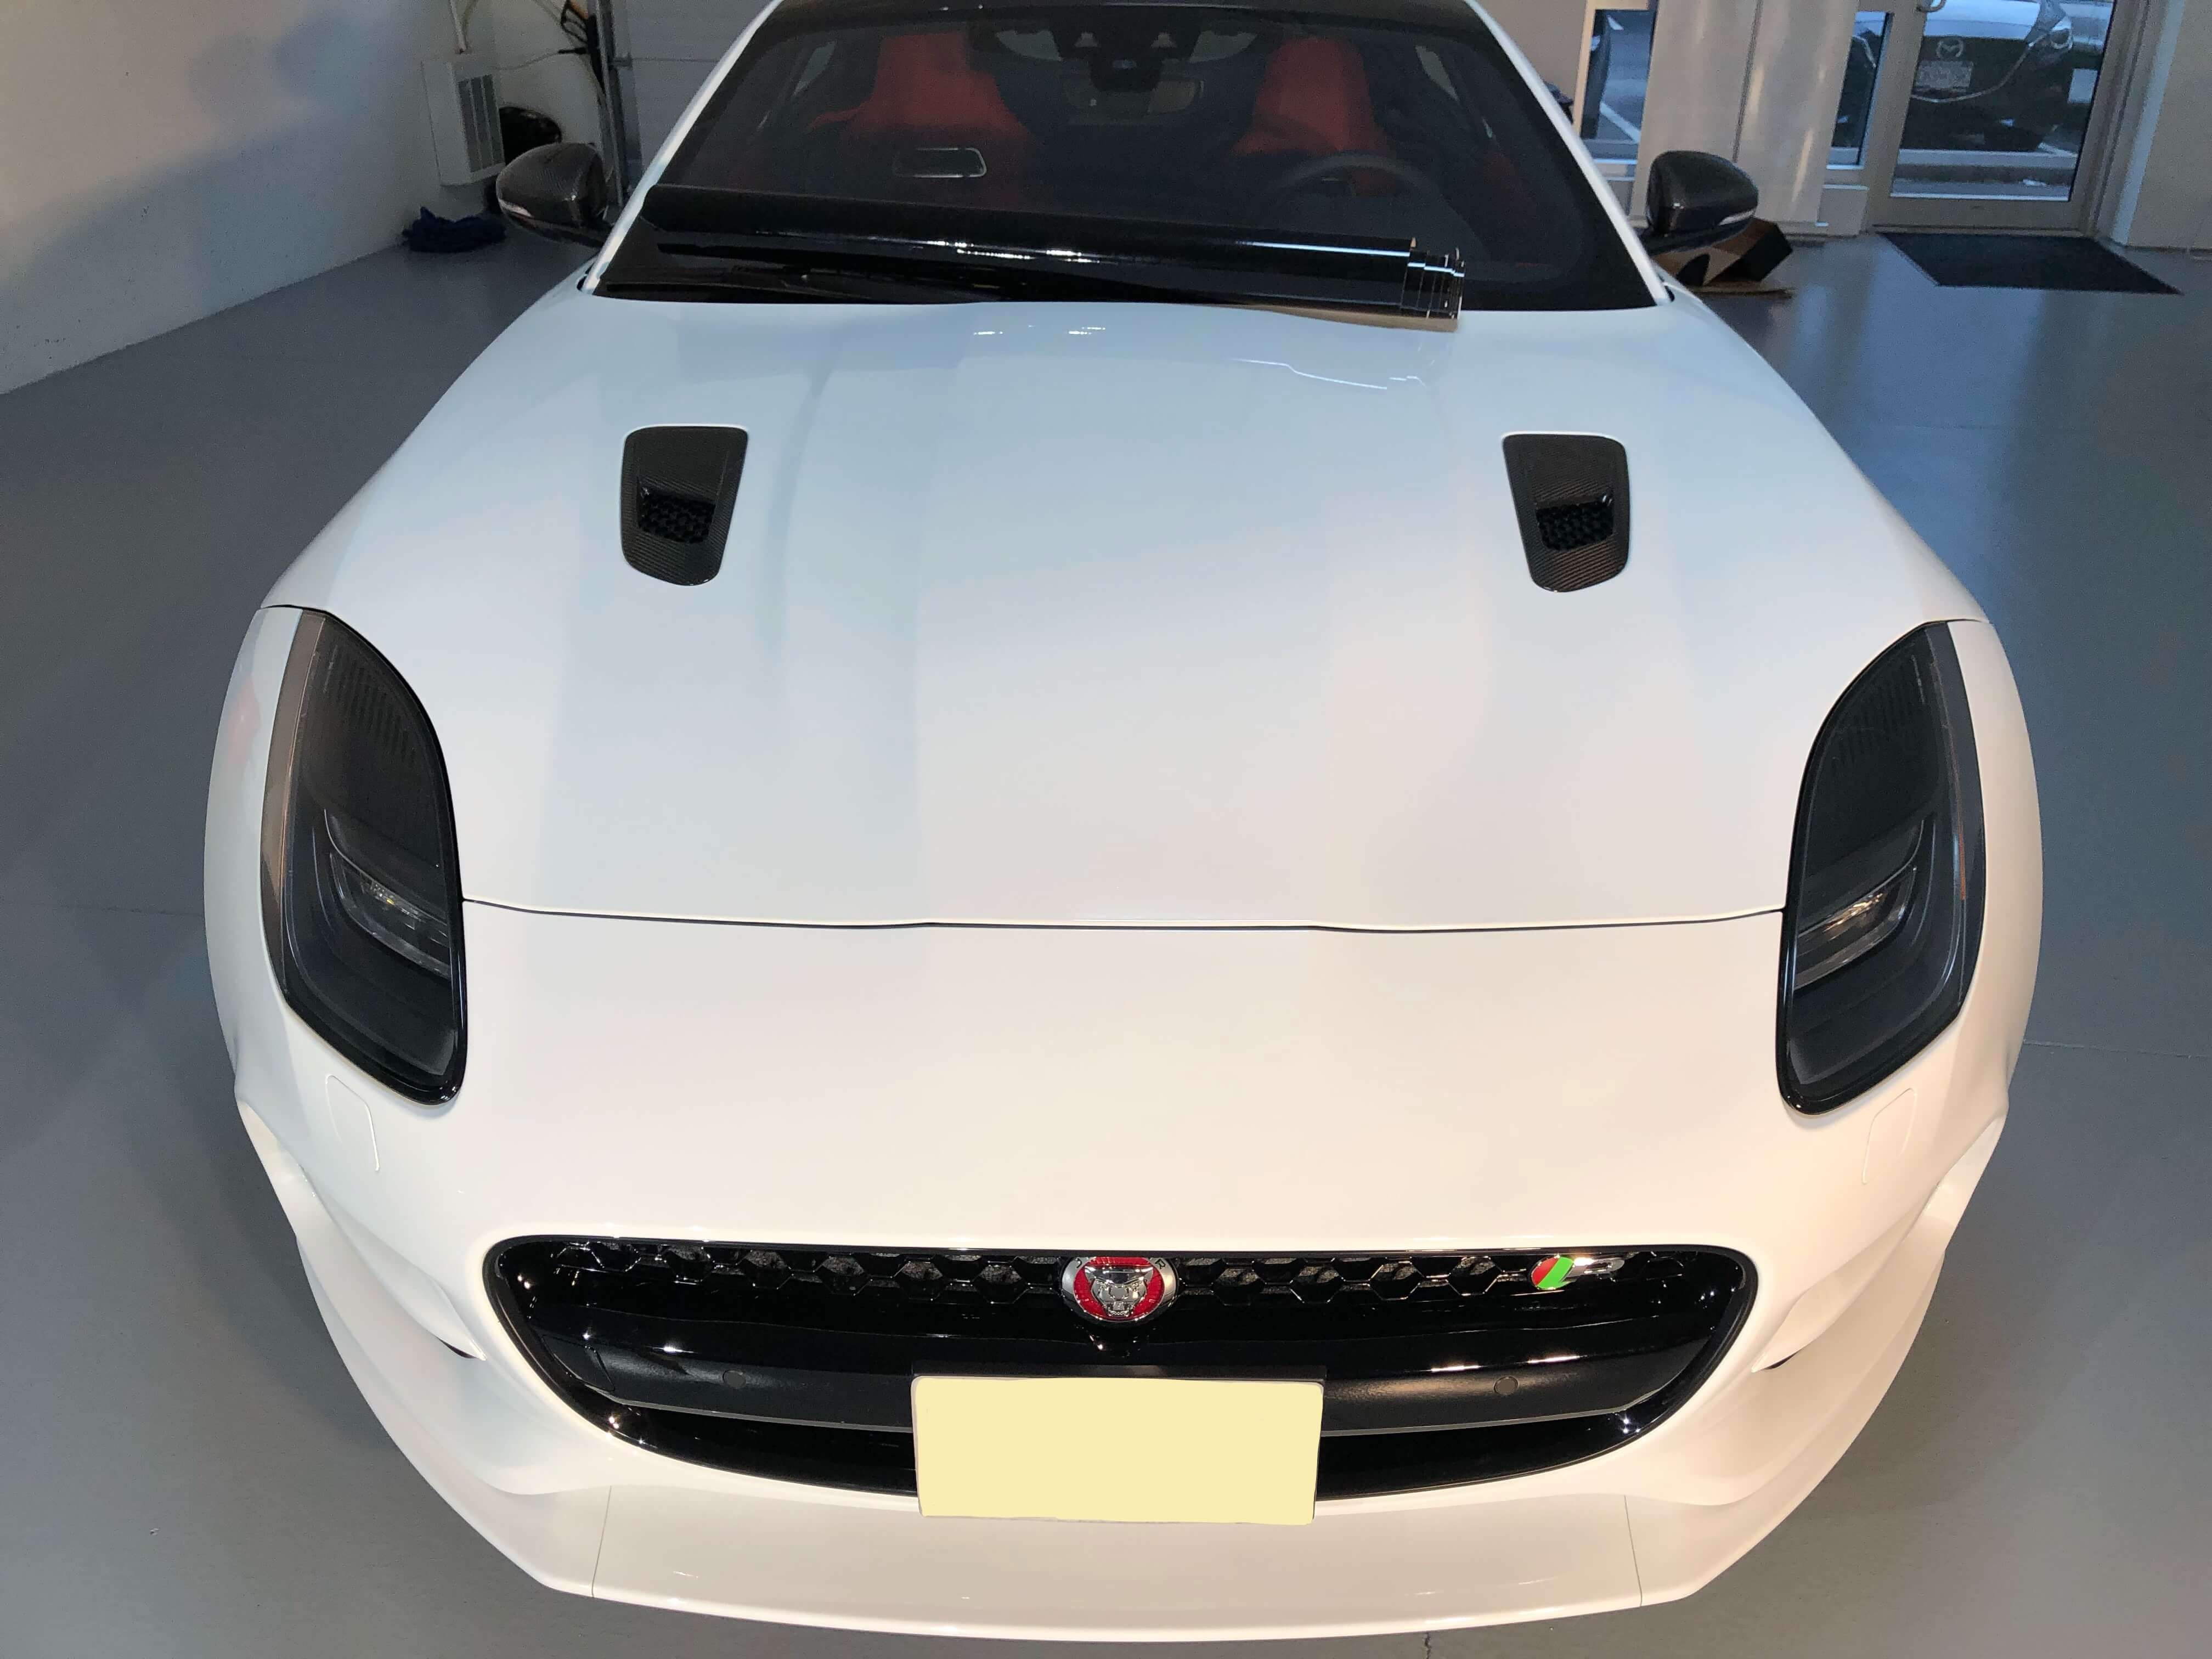 Jaguar with paint protection film applied by Gleamworks Detailing in Vancouver